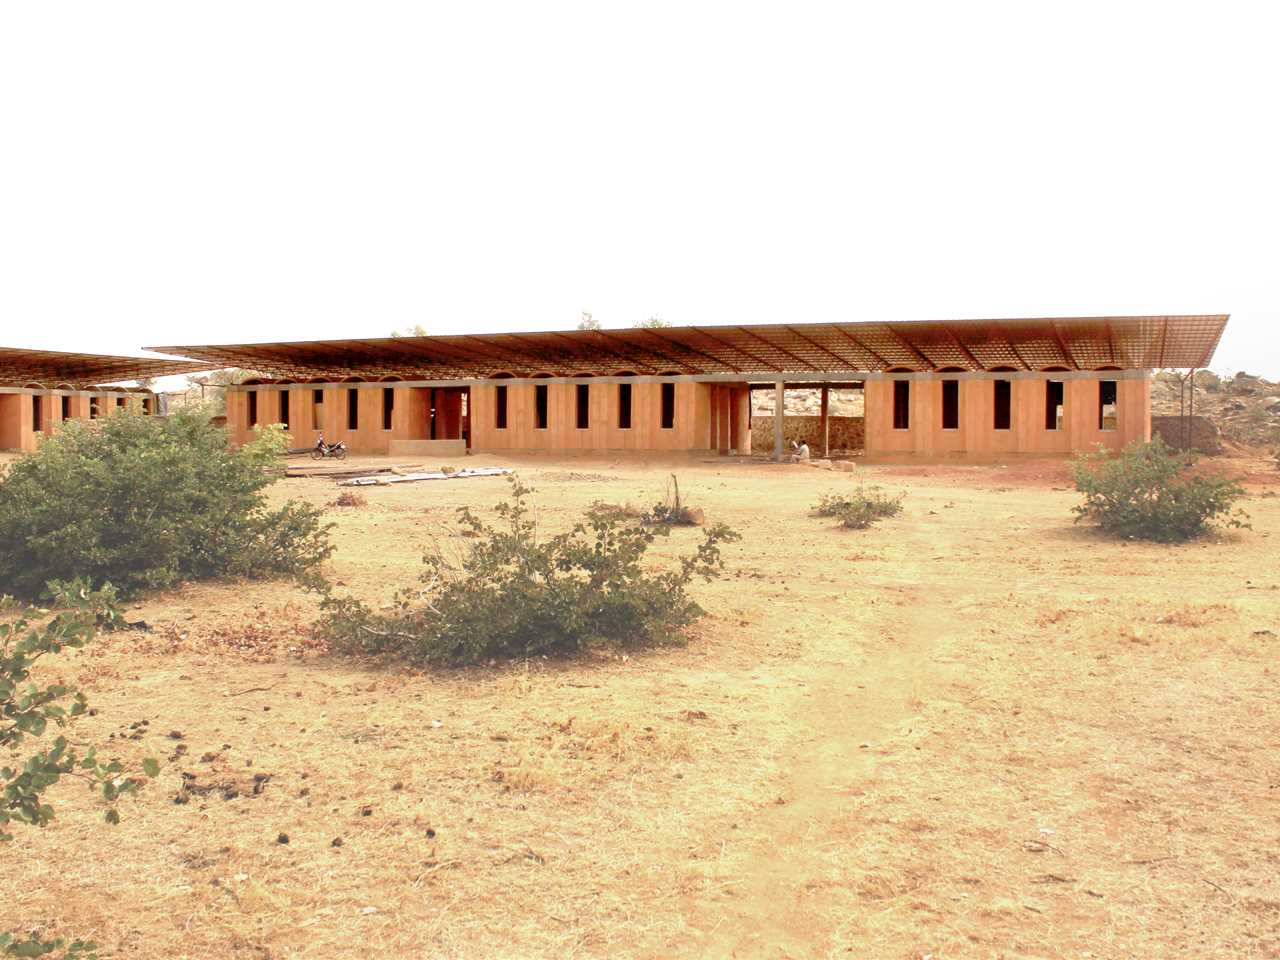 Project update March 2014 – Secondary school with passive ventilation system, Gando, Burkina Faso